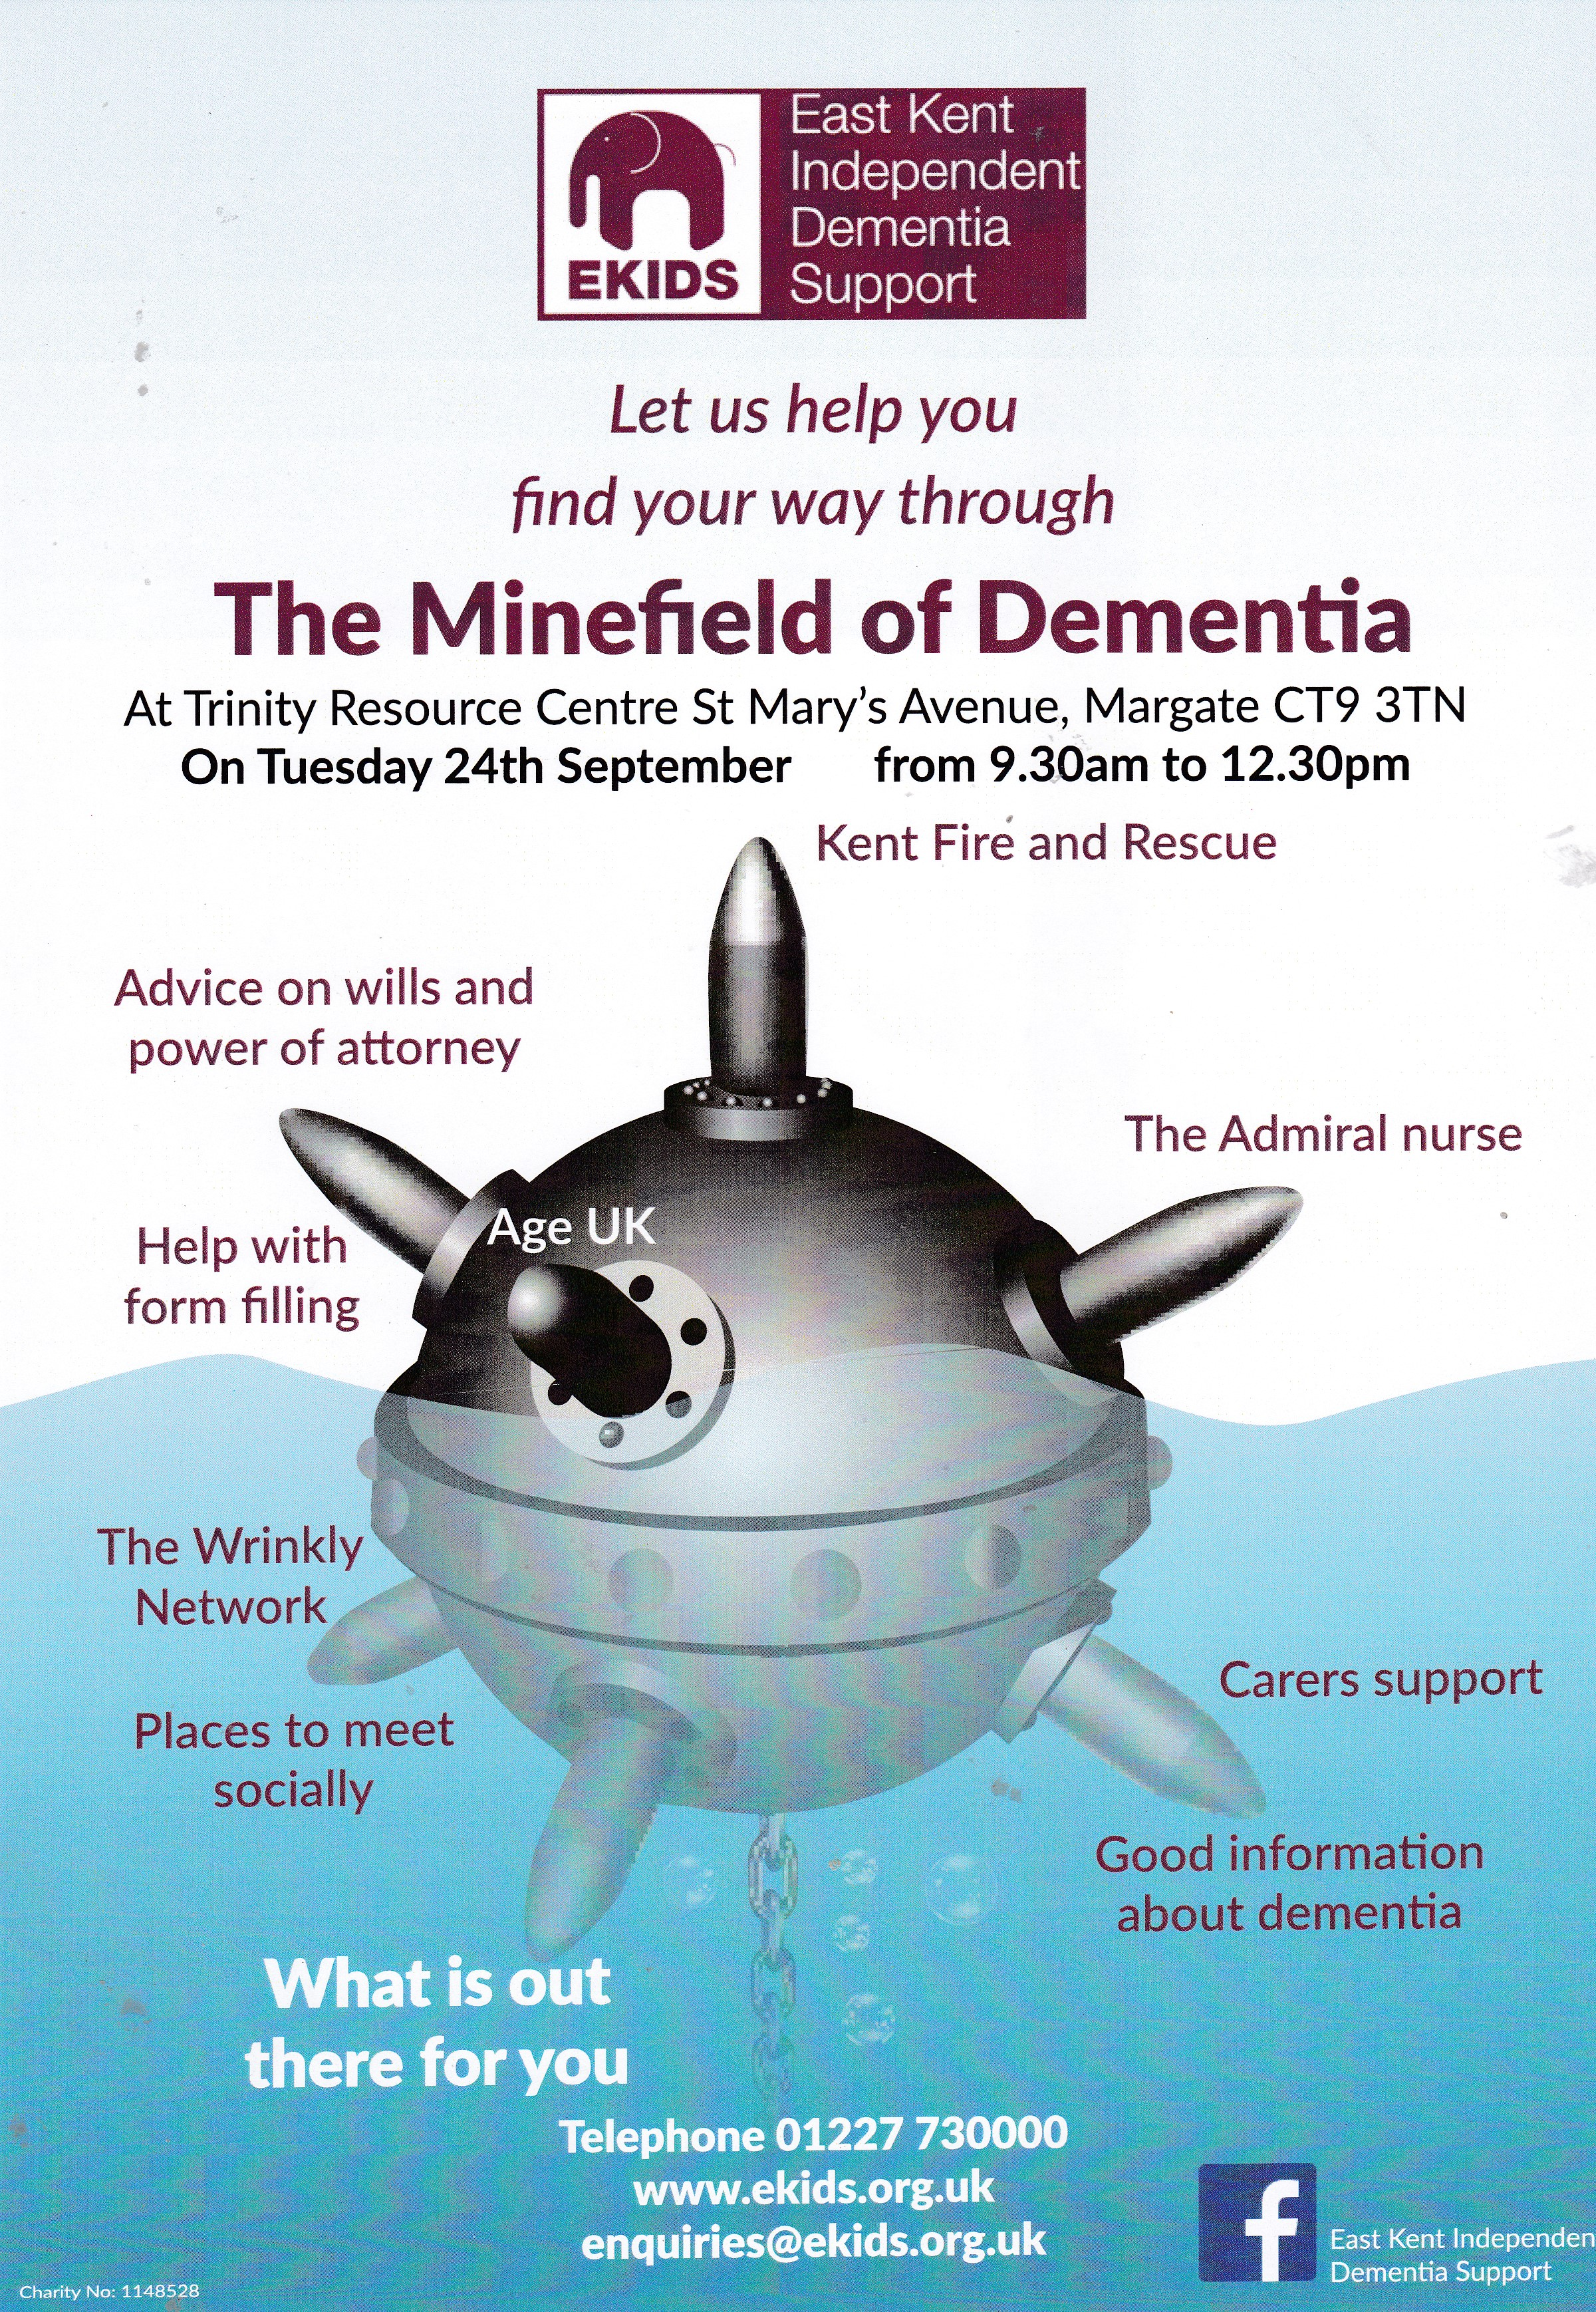 The minefield of dementia - EKIDS Event 24th September